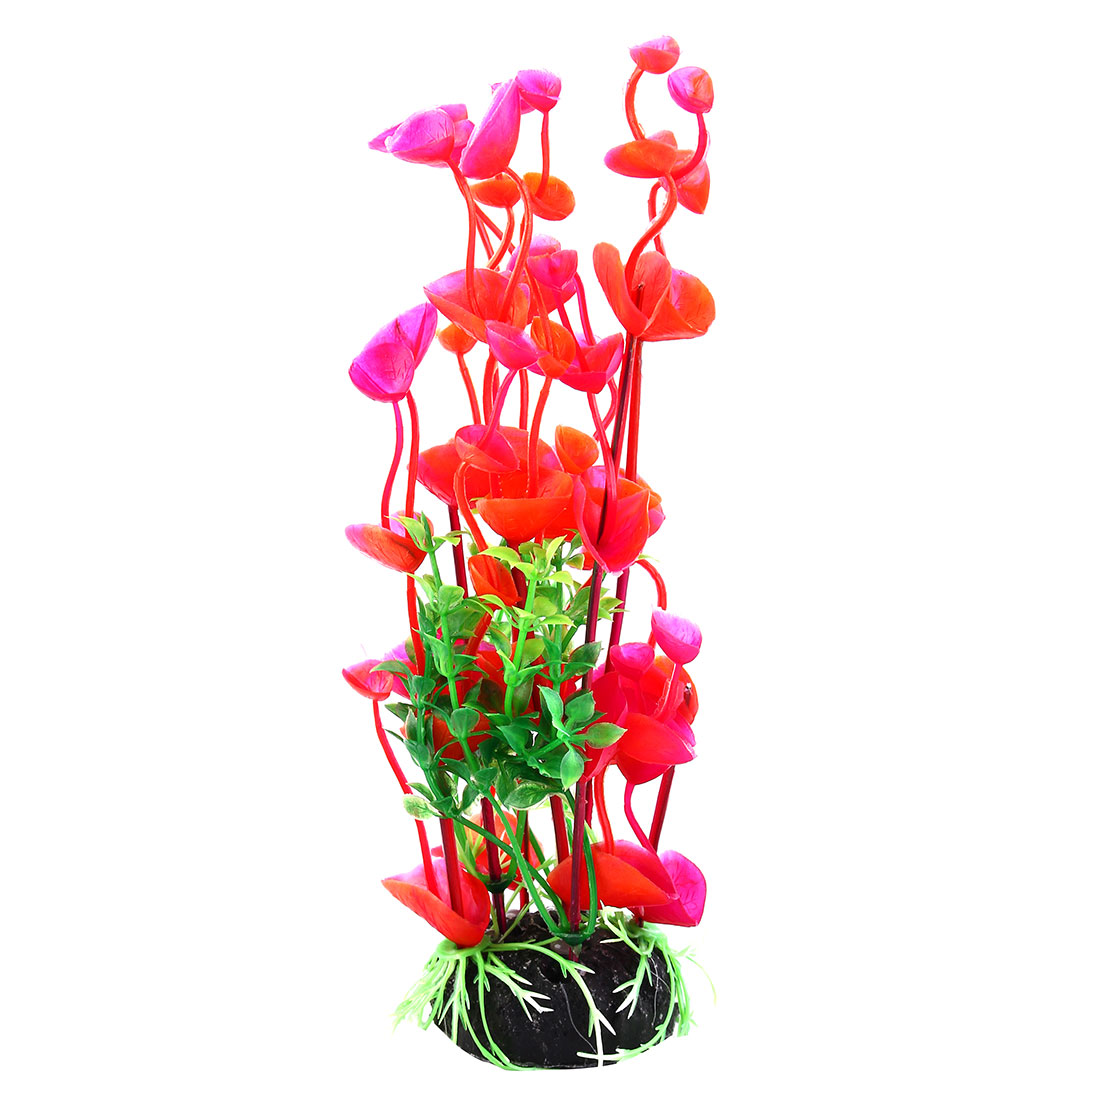 Aquarium Fish Tank Artificial Plants Aquascaping Ornament Red Green 8 Inch Height